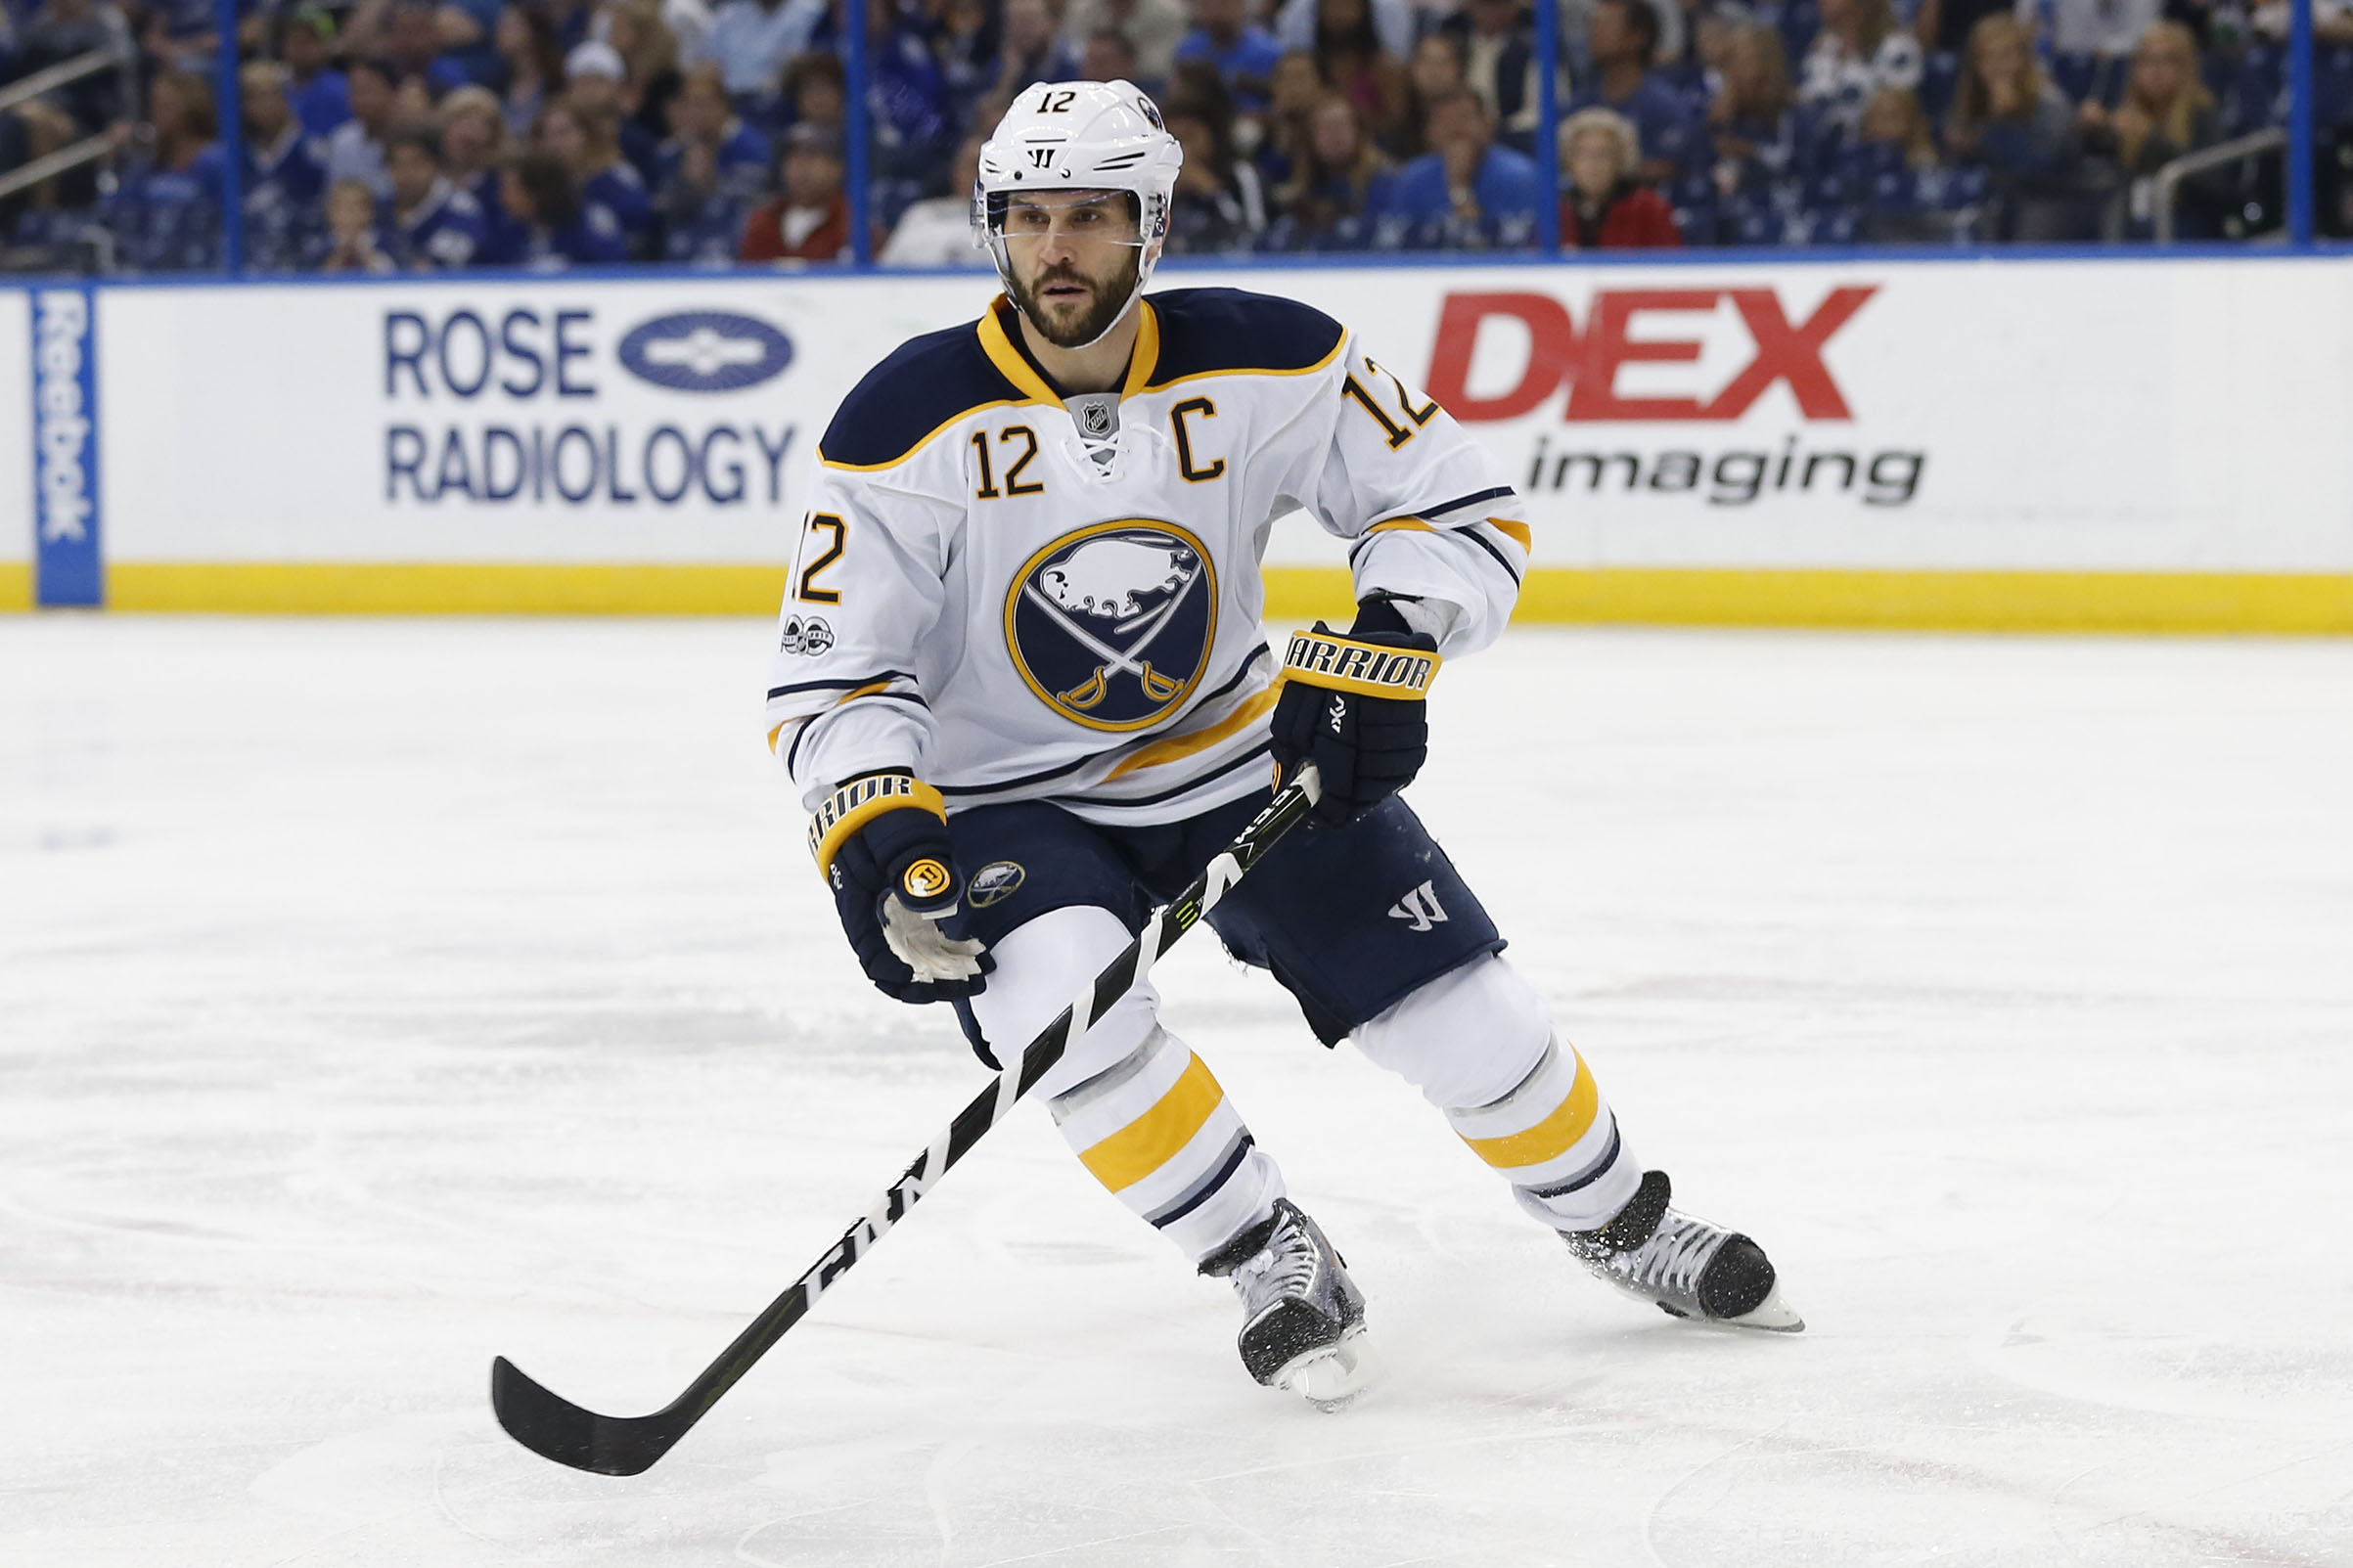 Buffalo Sabres right wing Brian Gionta skates in the 1st period of the NHL game between the Buffalo Sabres and Tampa Bay Lightning on April 09, 2017.